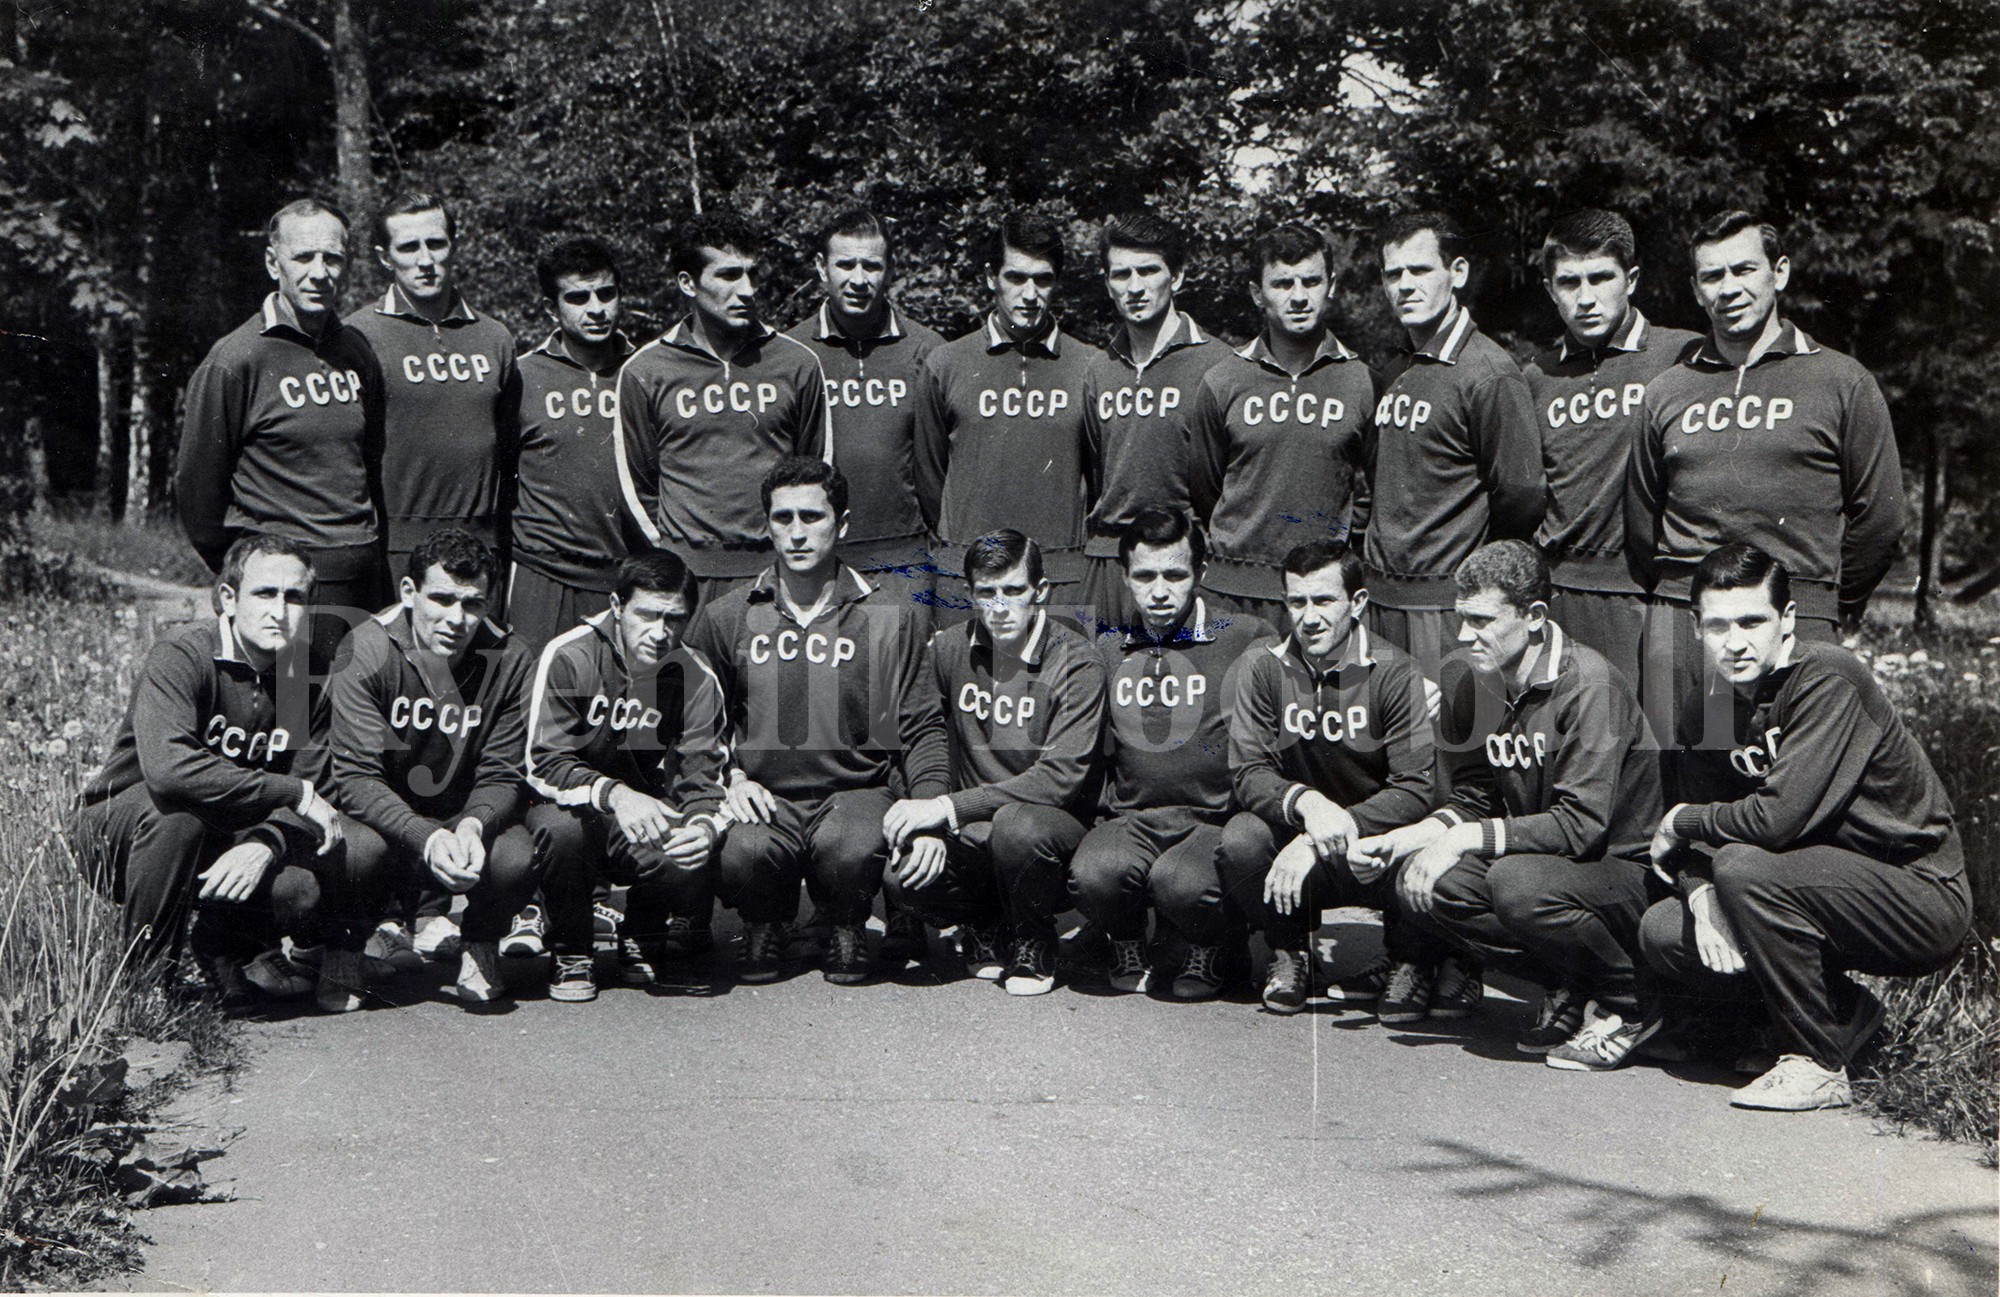 1966 Russian Squad With The Legendary Lev Yashin 5th From Left On Back Row